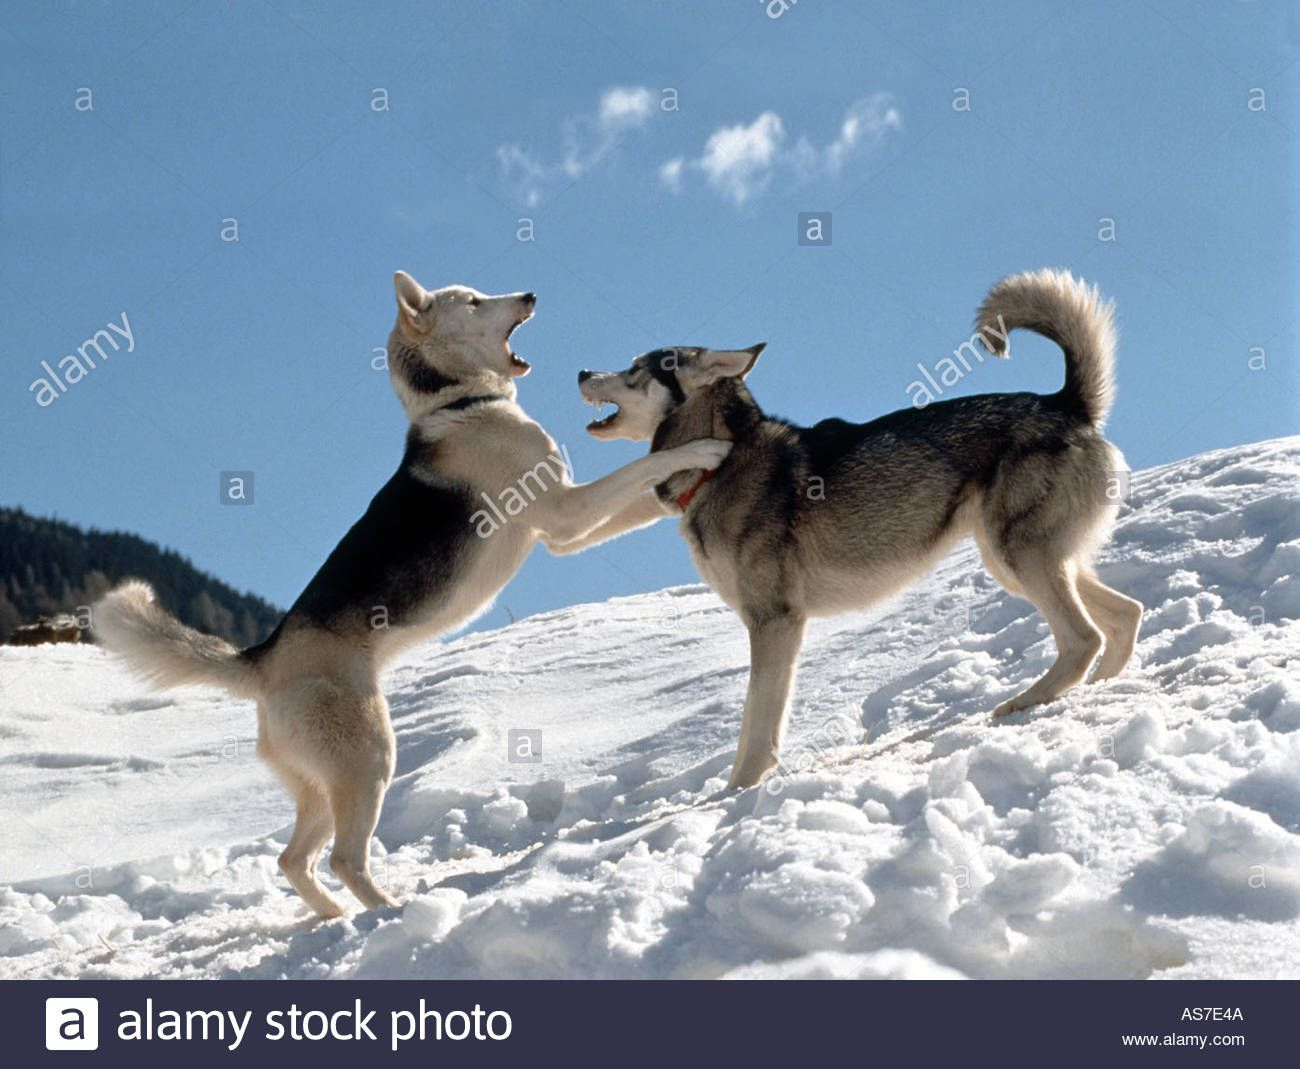 Two Siberian Huskies Playing In Snow Stock Photo Royalty Free